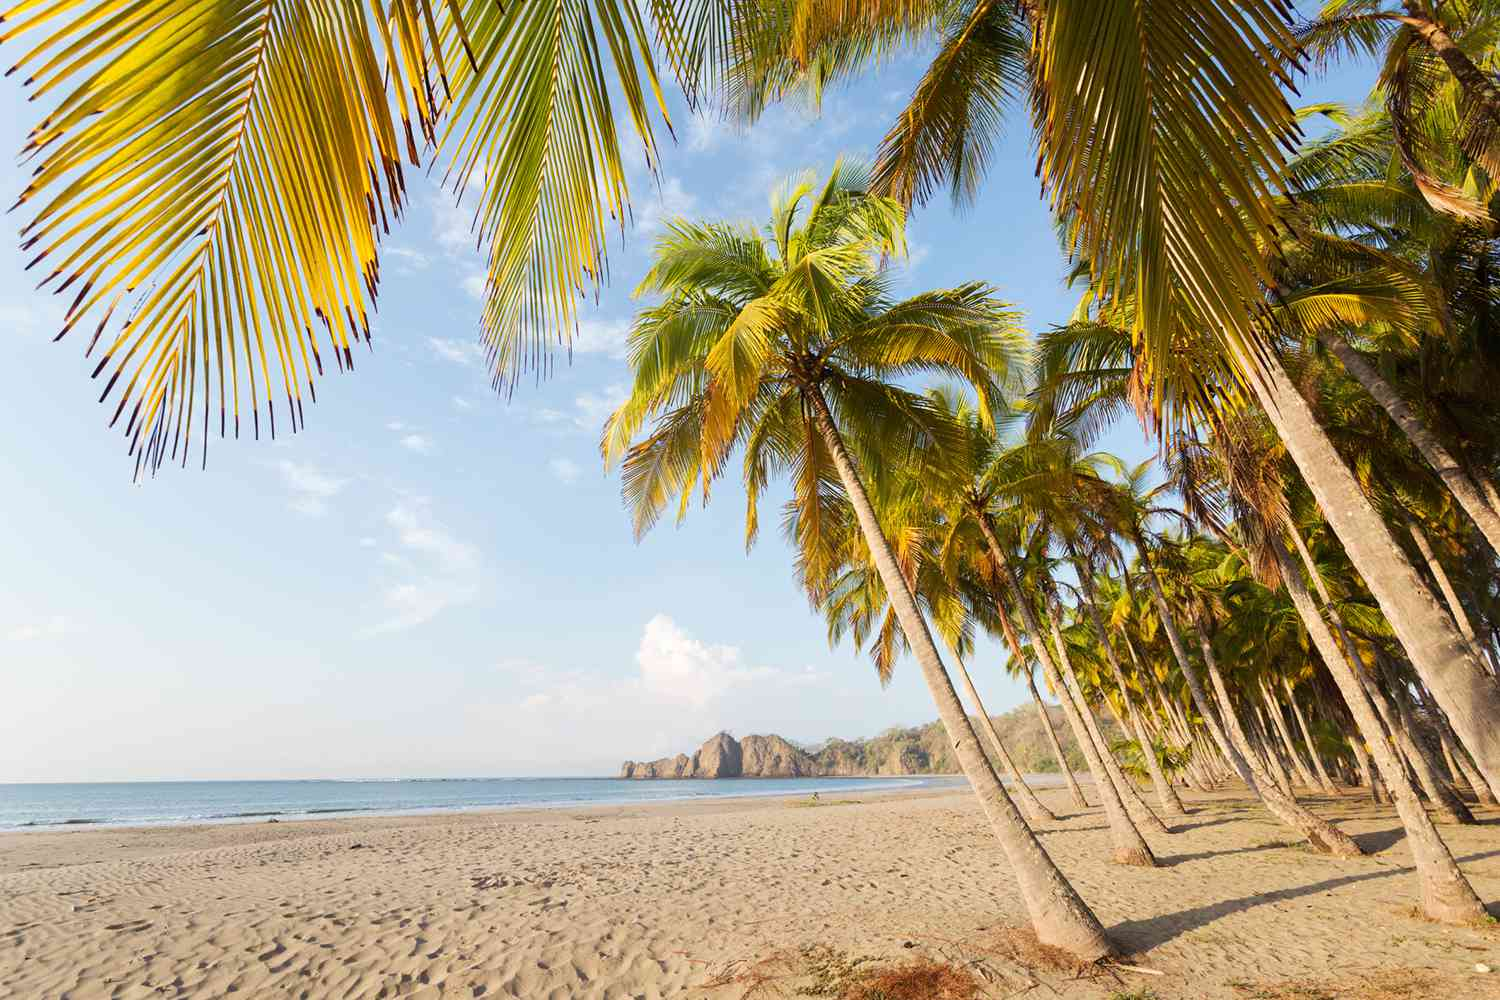 Palm trees on the beach at Playa Carrillo in Costa Rica